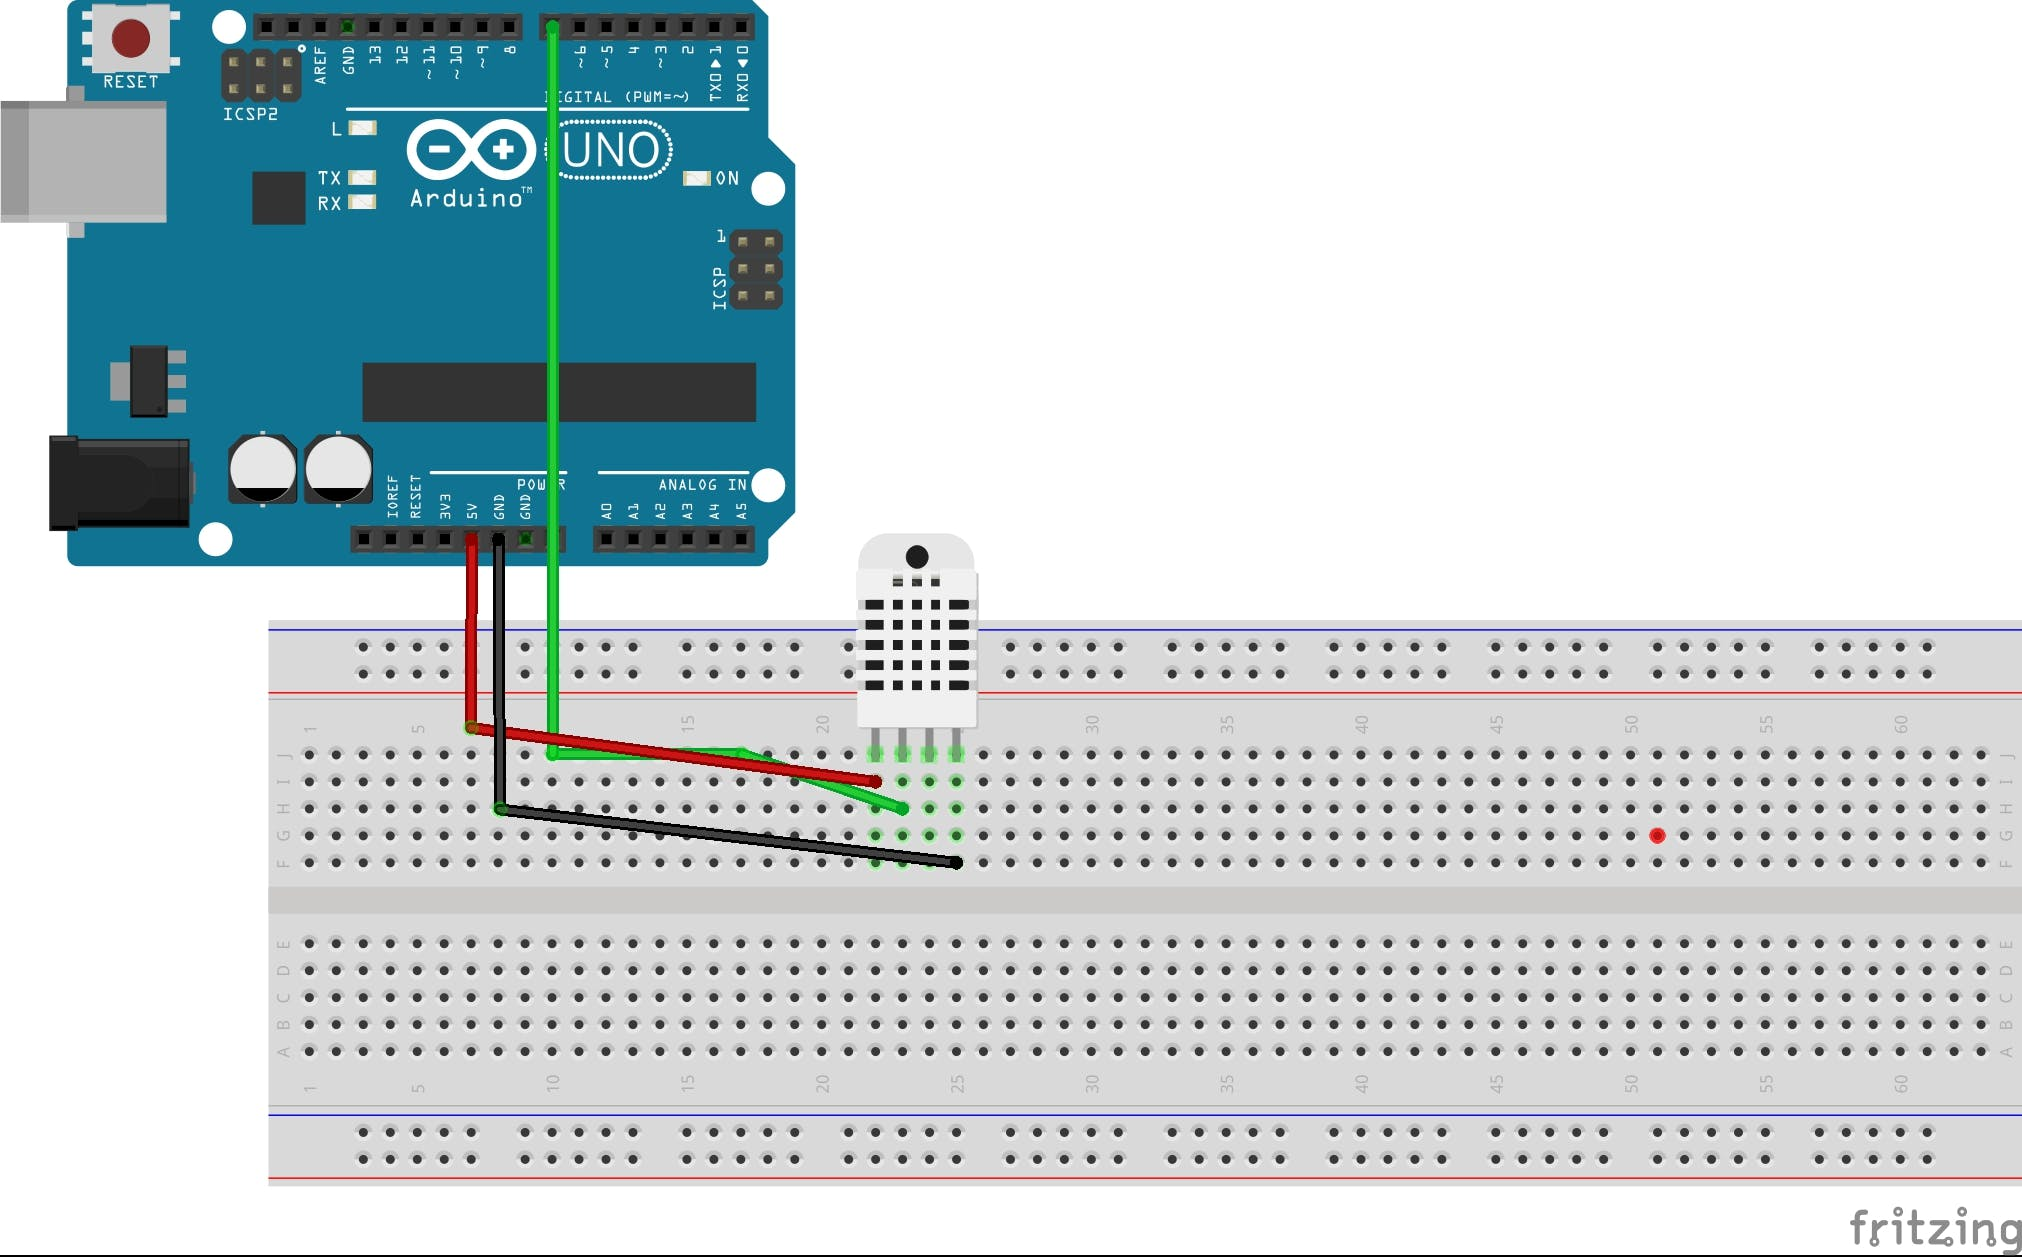 Temperature Monitoring With DHT22 & Arduino